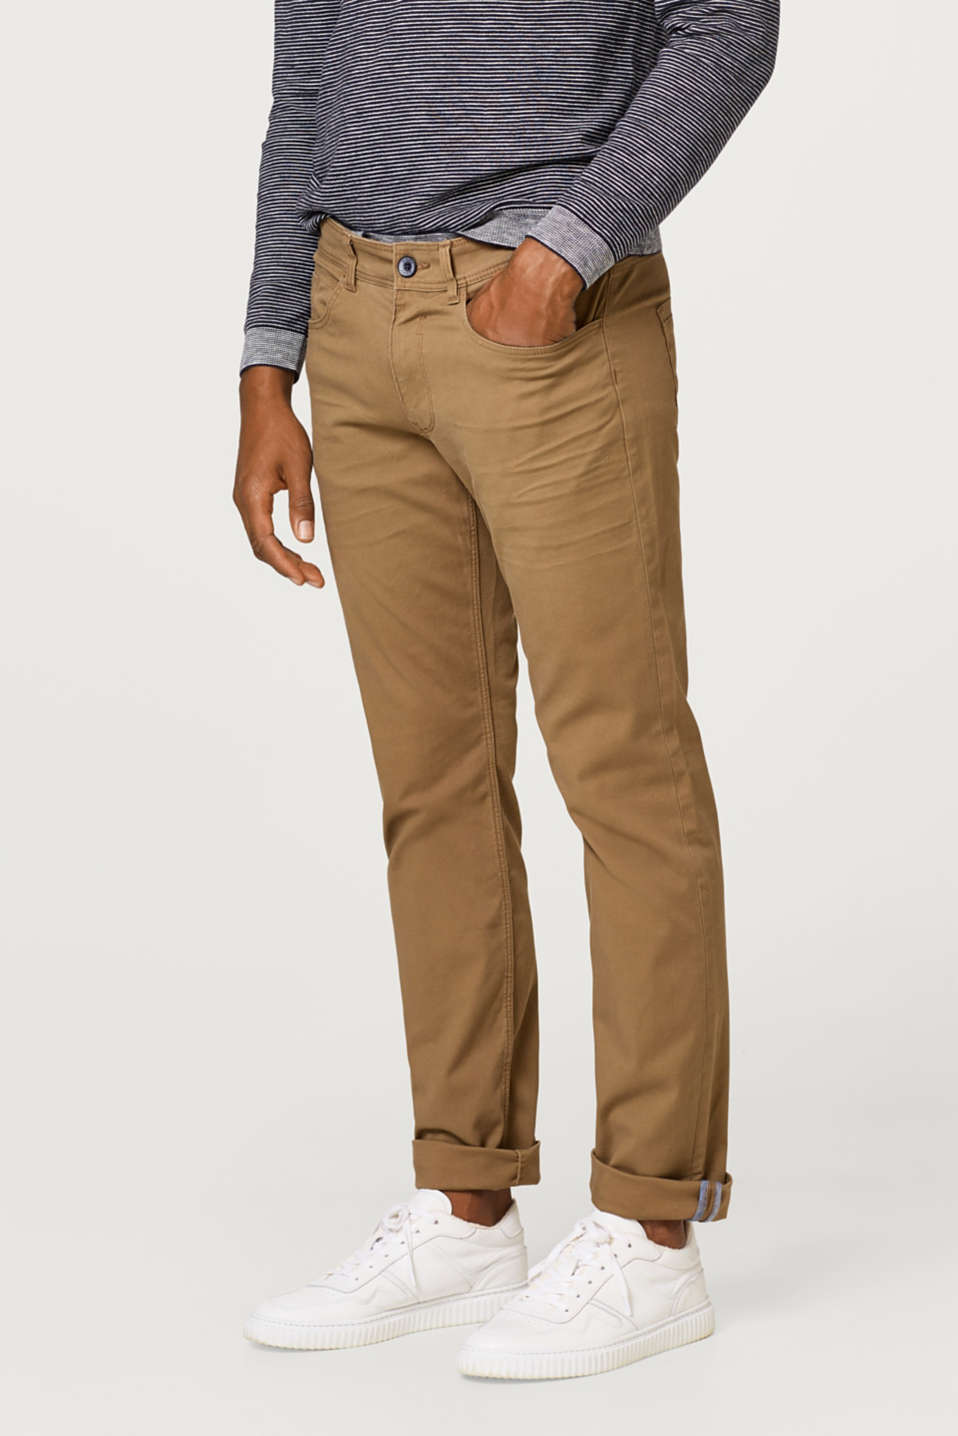 Esprit - Twill trousers in 100% cotton